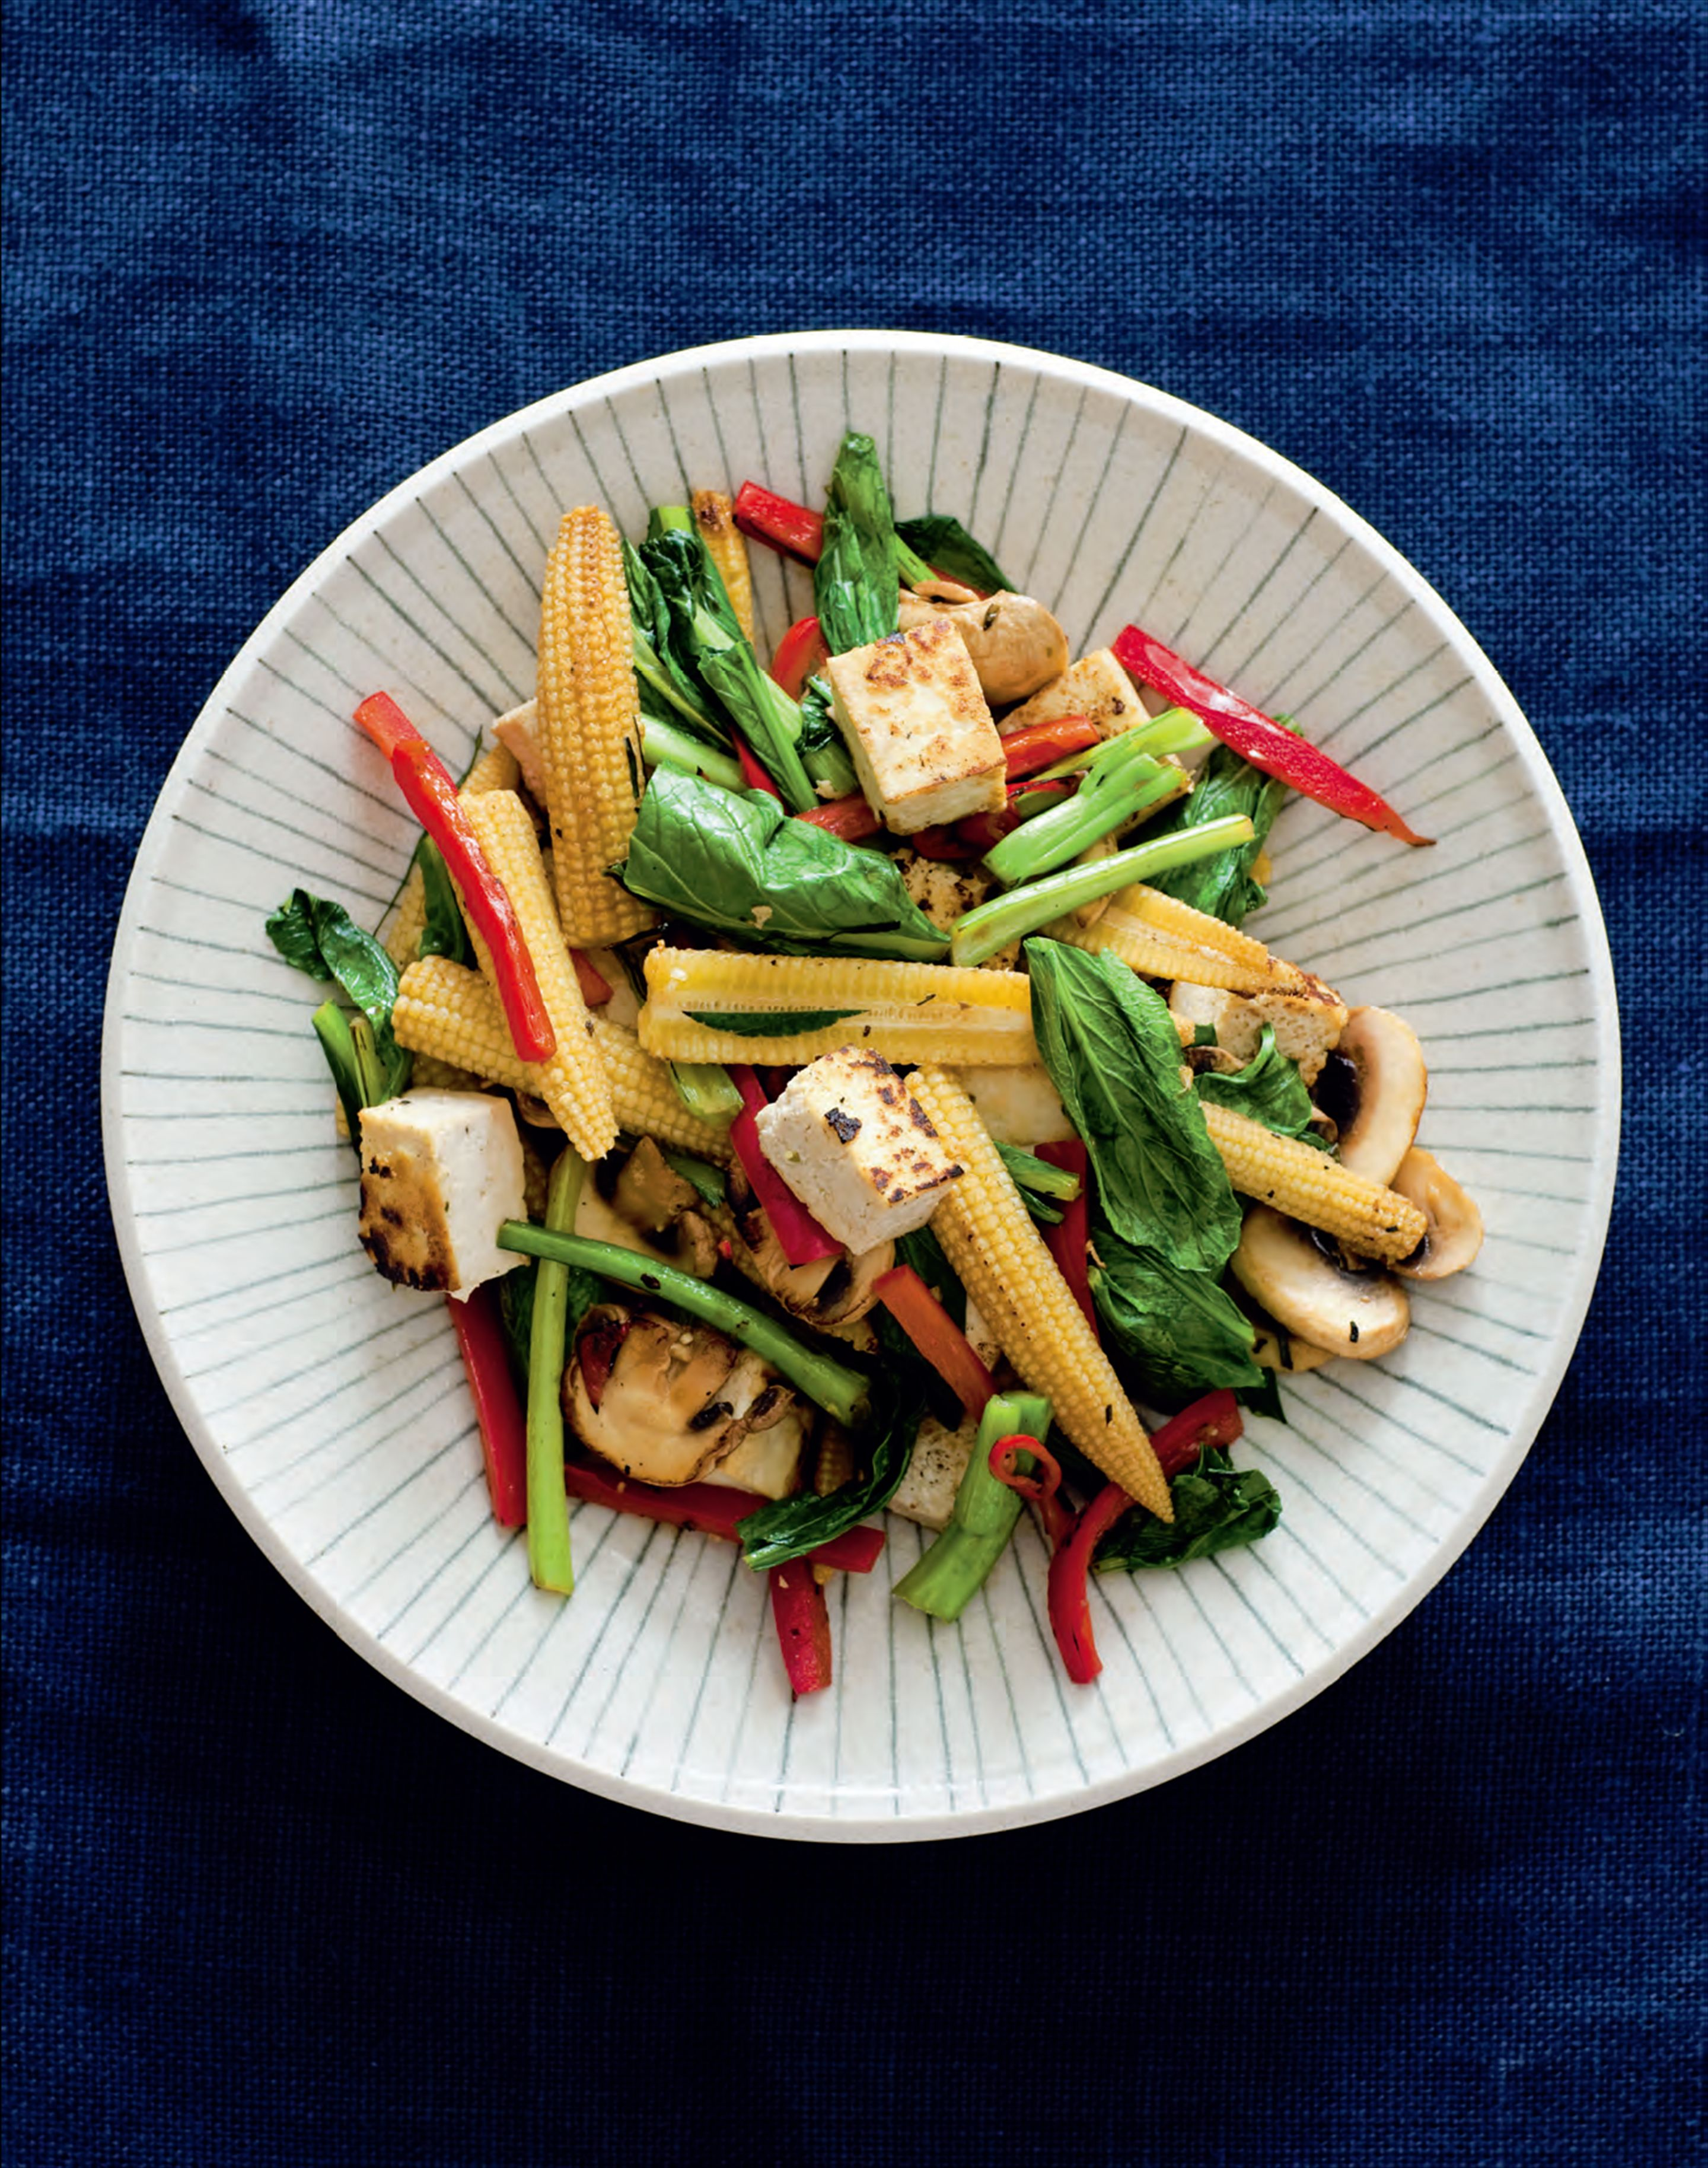 Vietnamese tofu and vegetable stir-fry